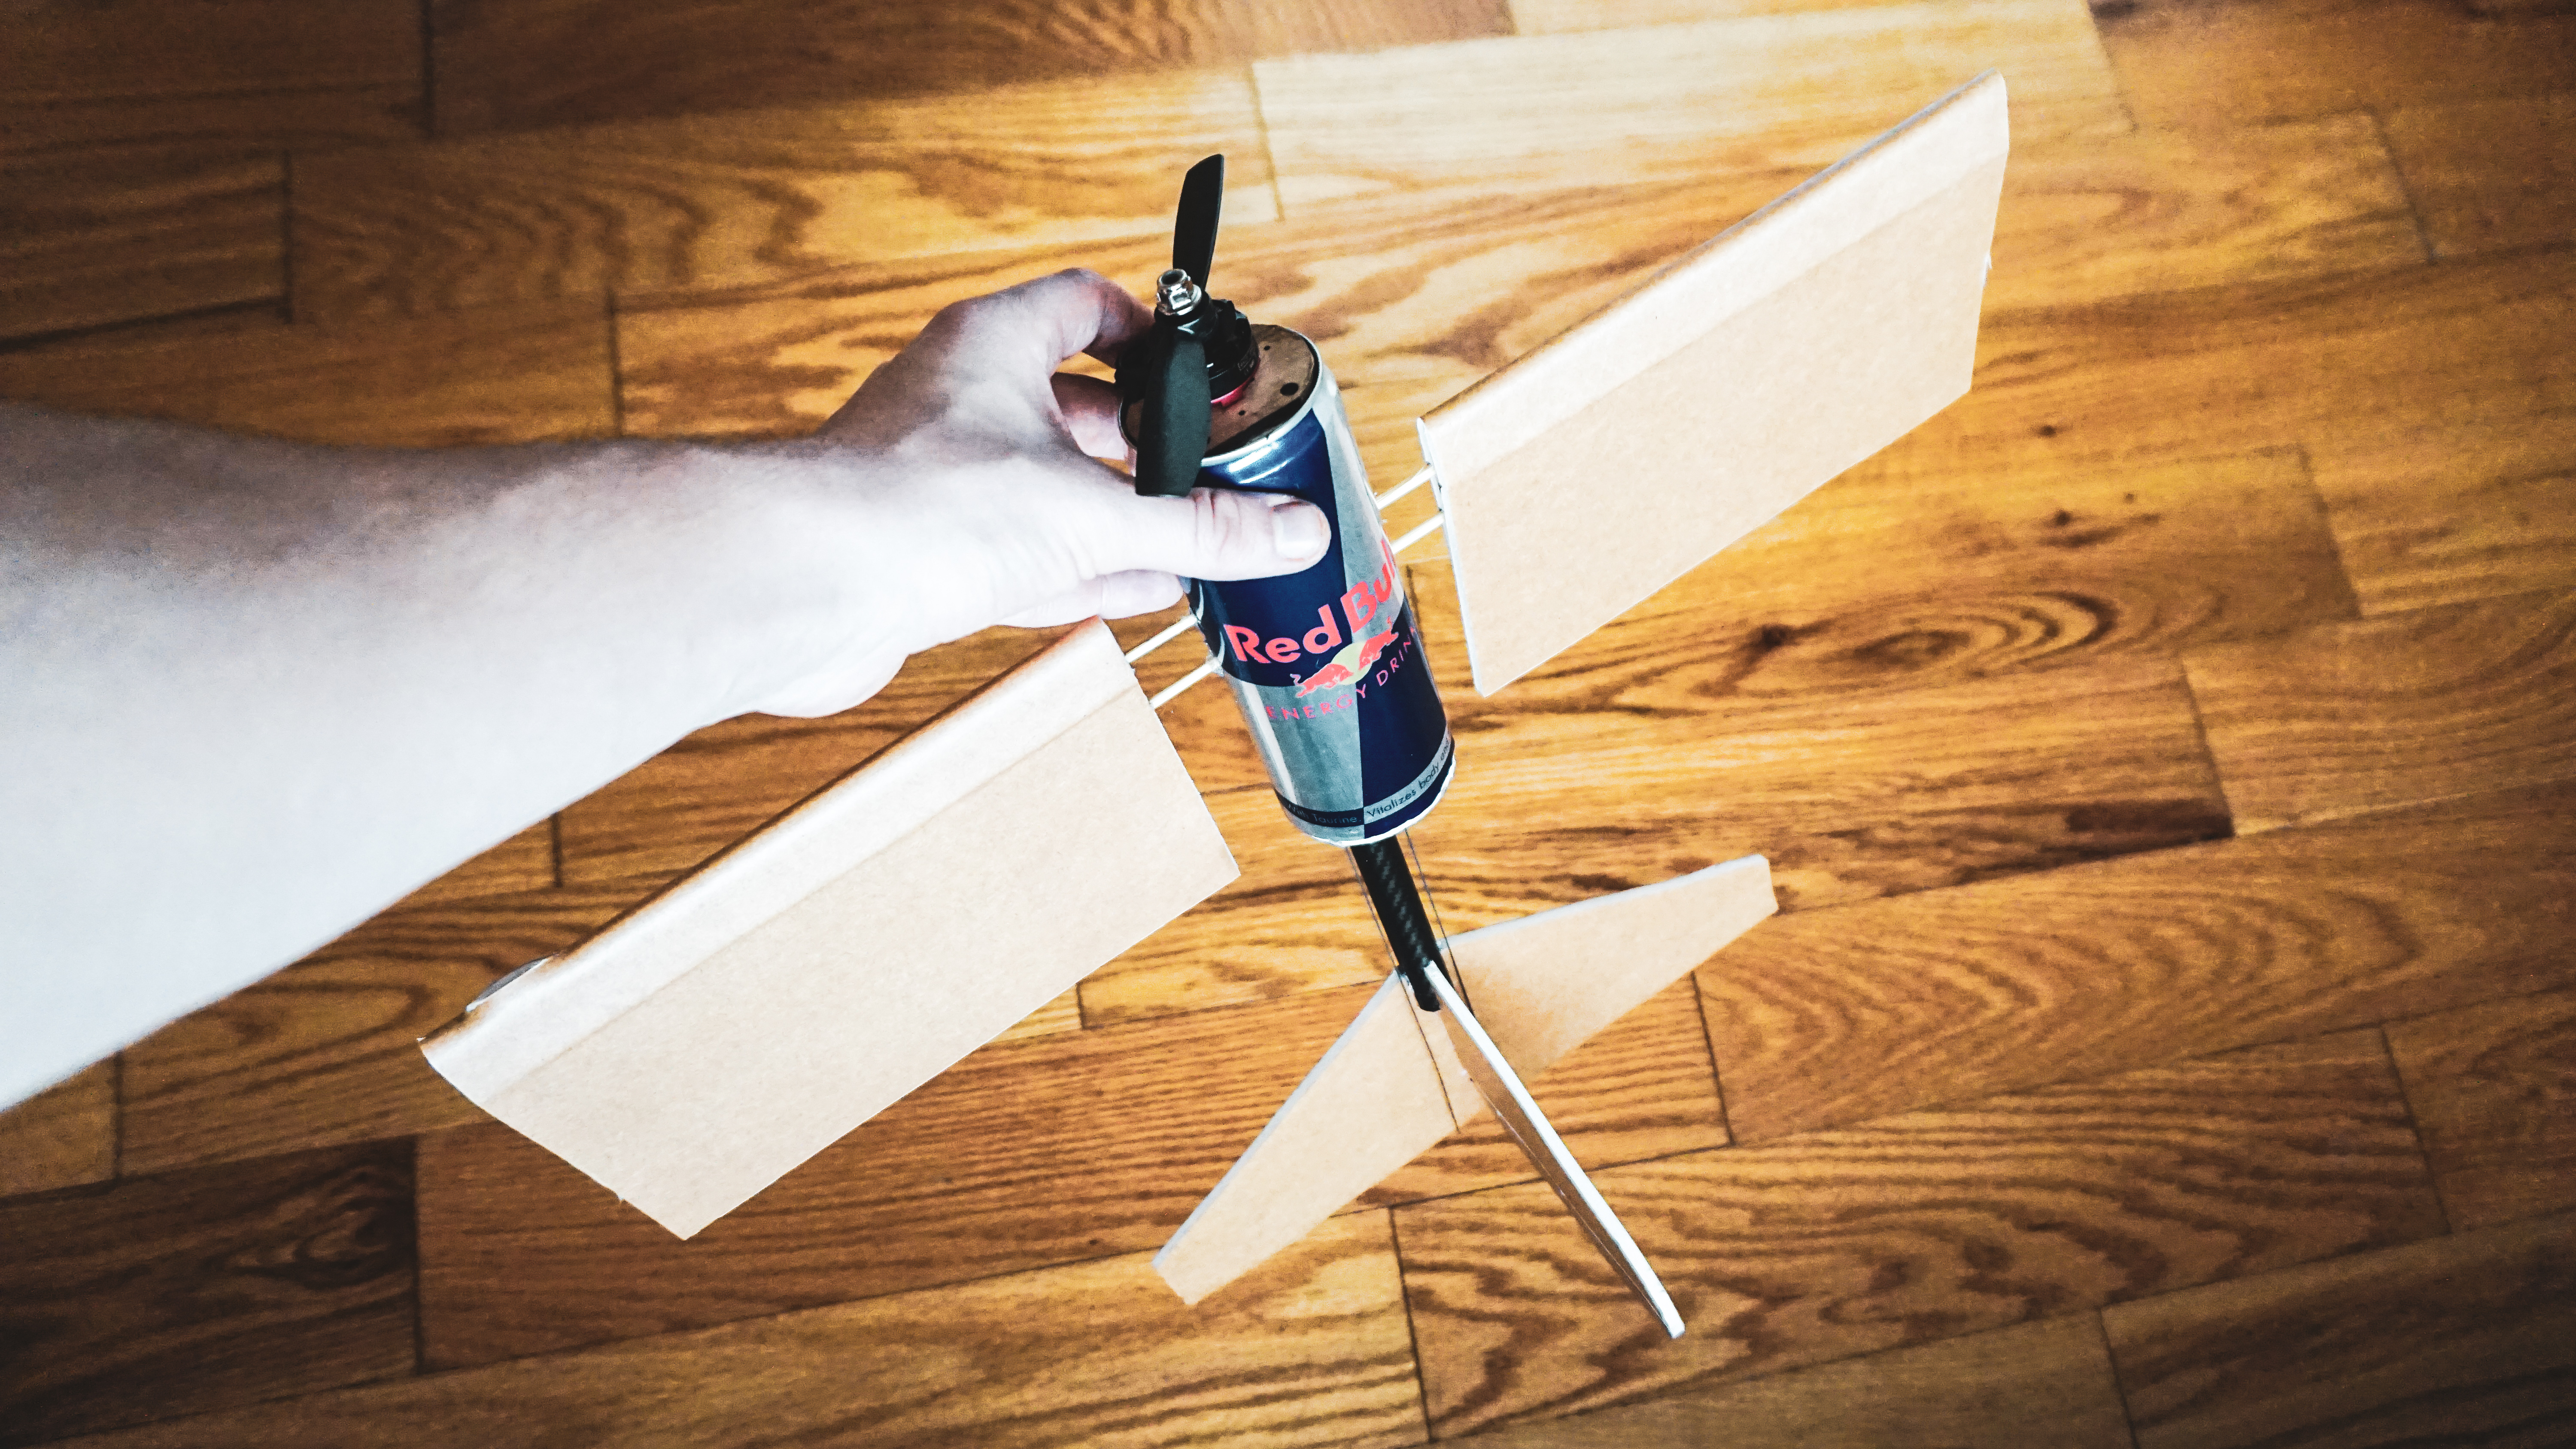 How To Make an RC Airplane from a Red Bull | Flite Test